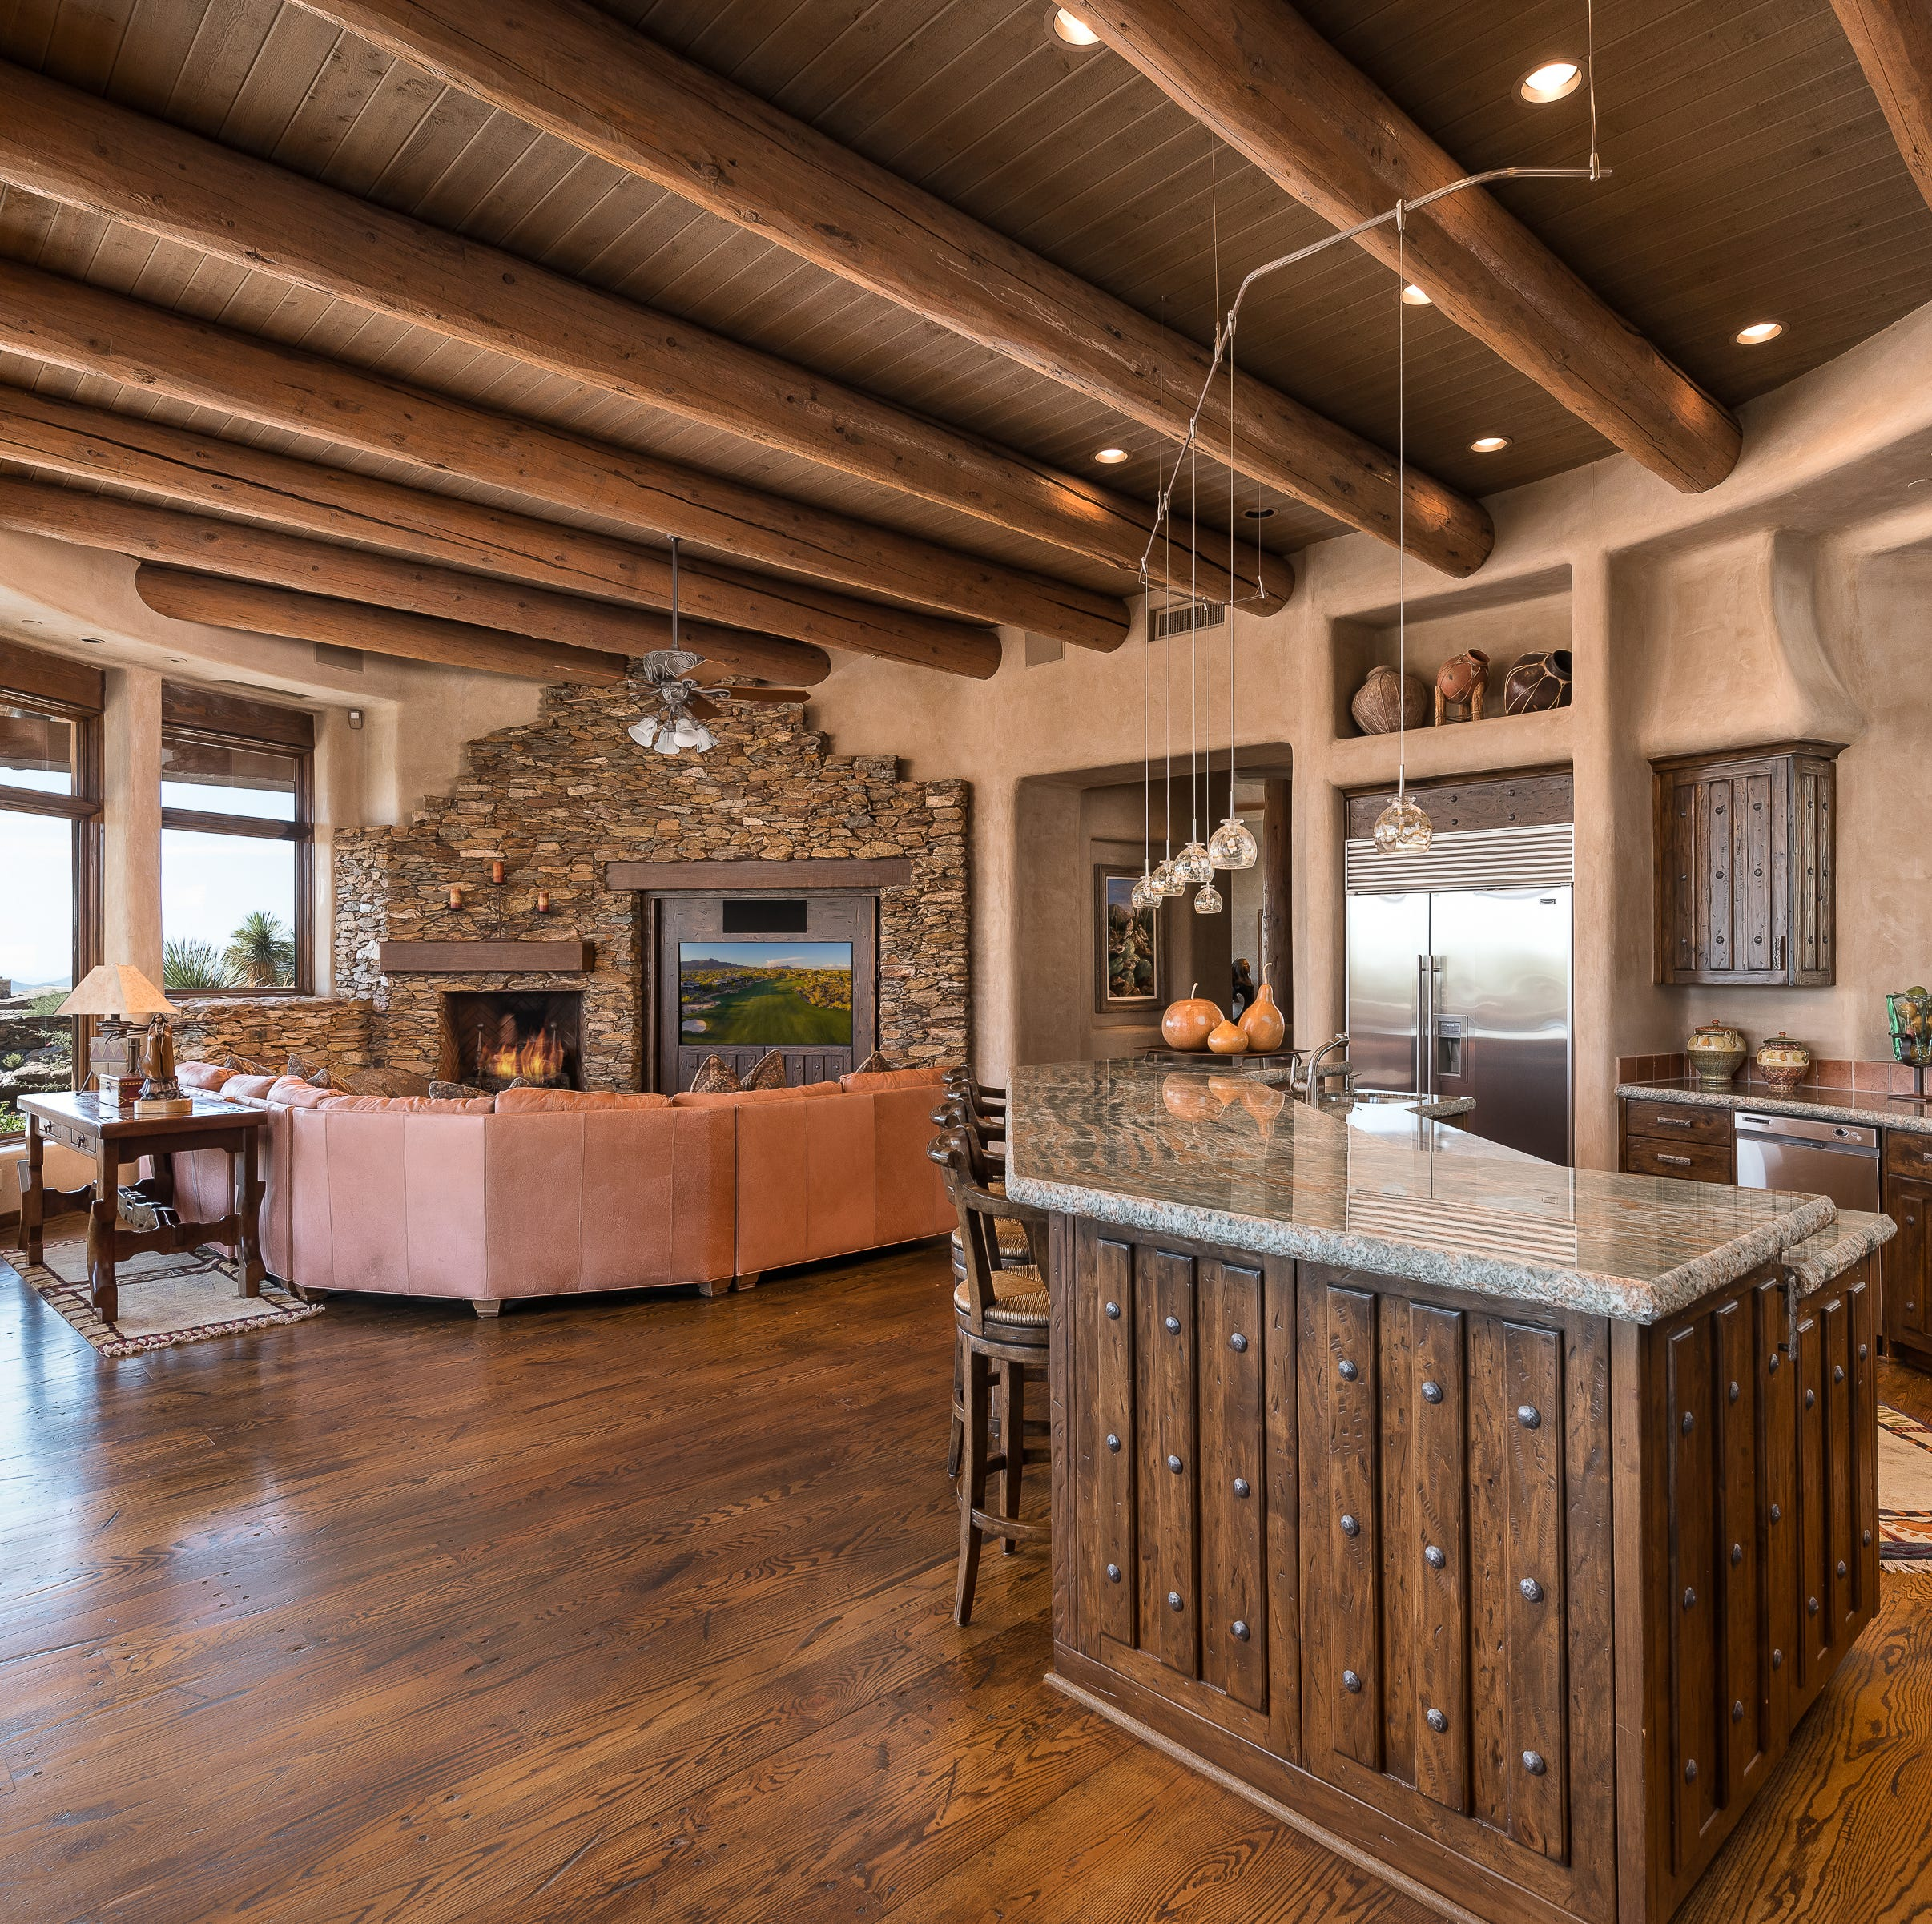 $2.98M Scottsdale house has 9-foot ceilings and Southwestern architecture